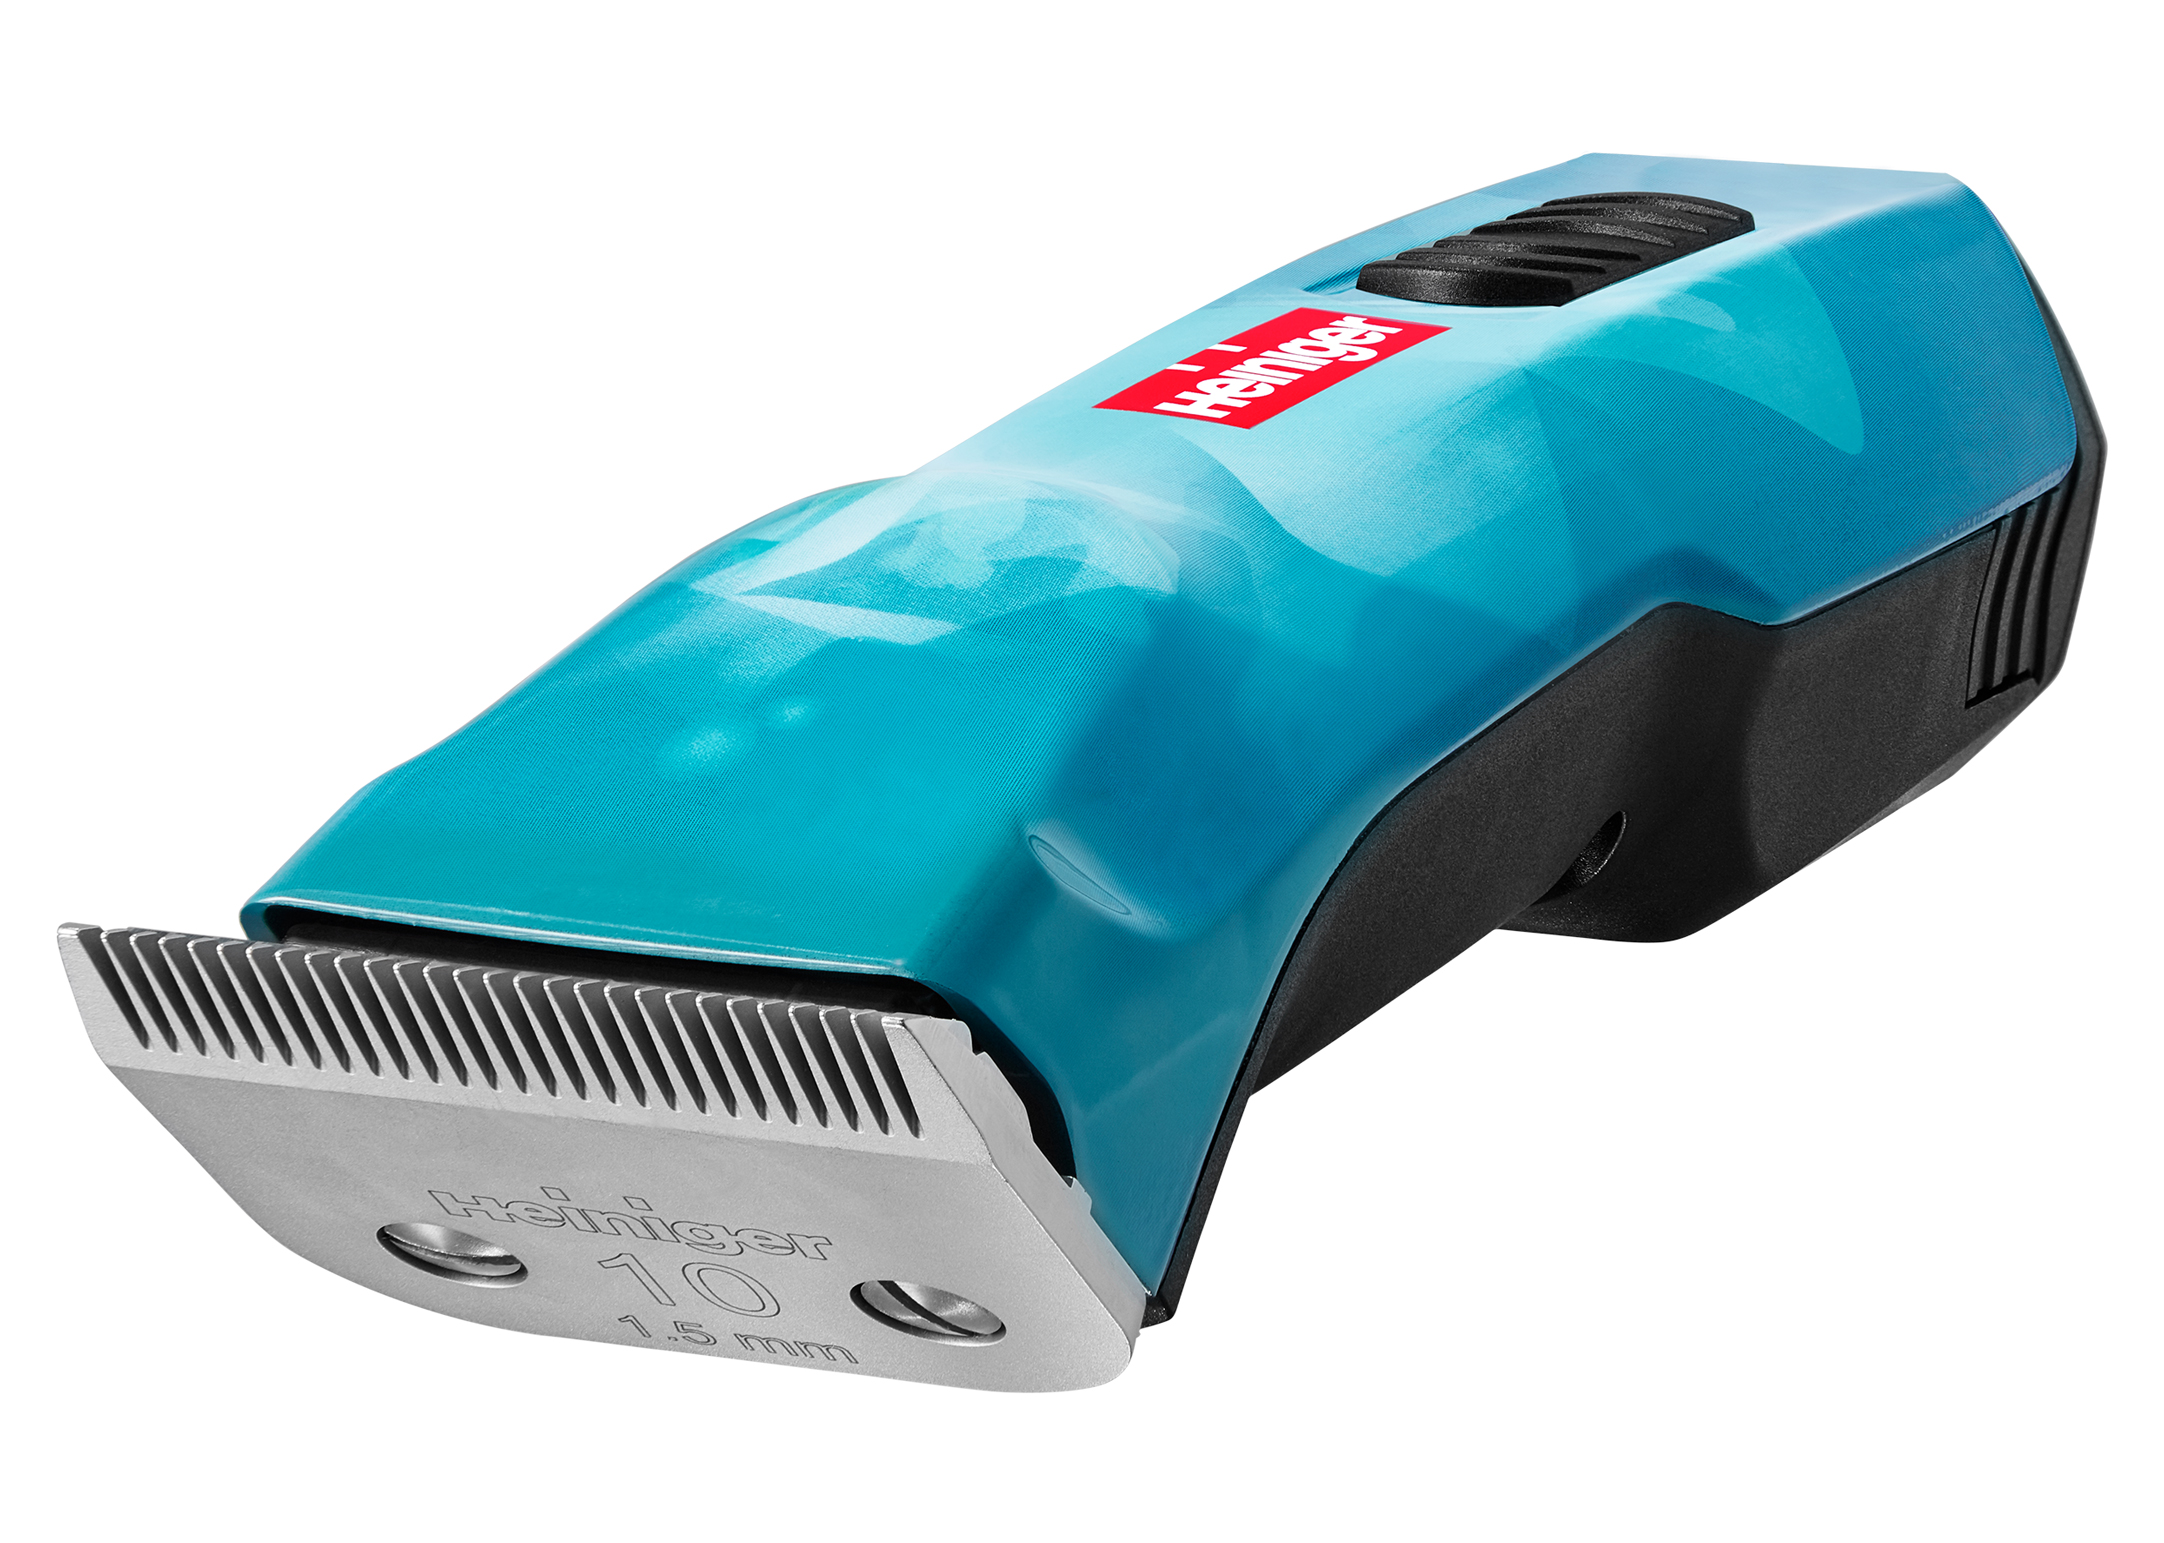 Heiniger Opal 2-speed Animal Clipper with #10 blade